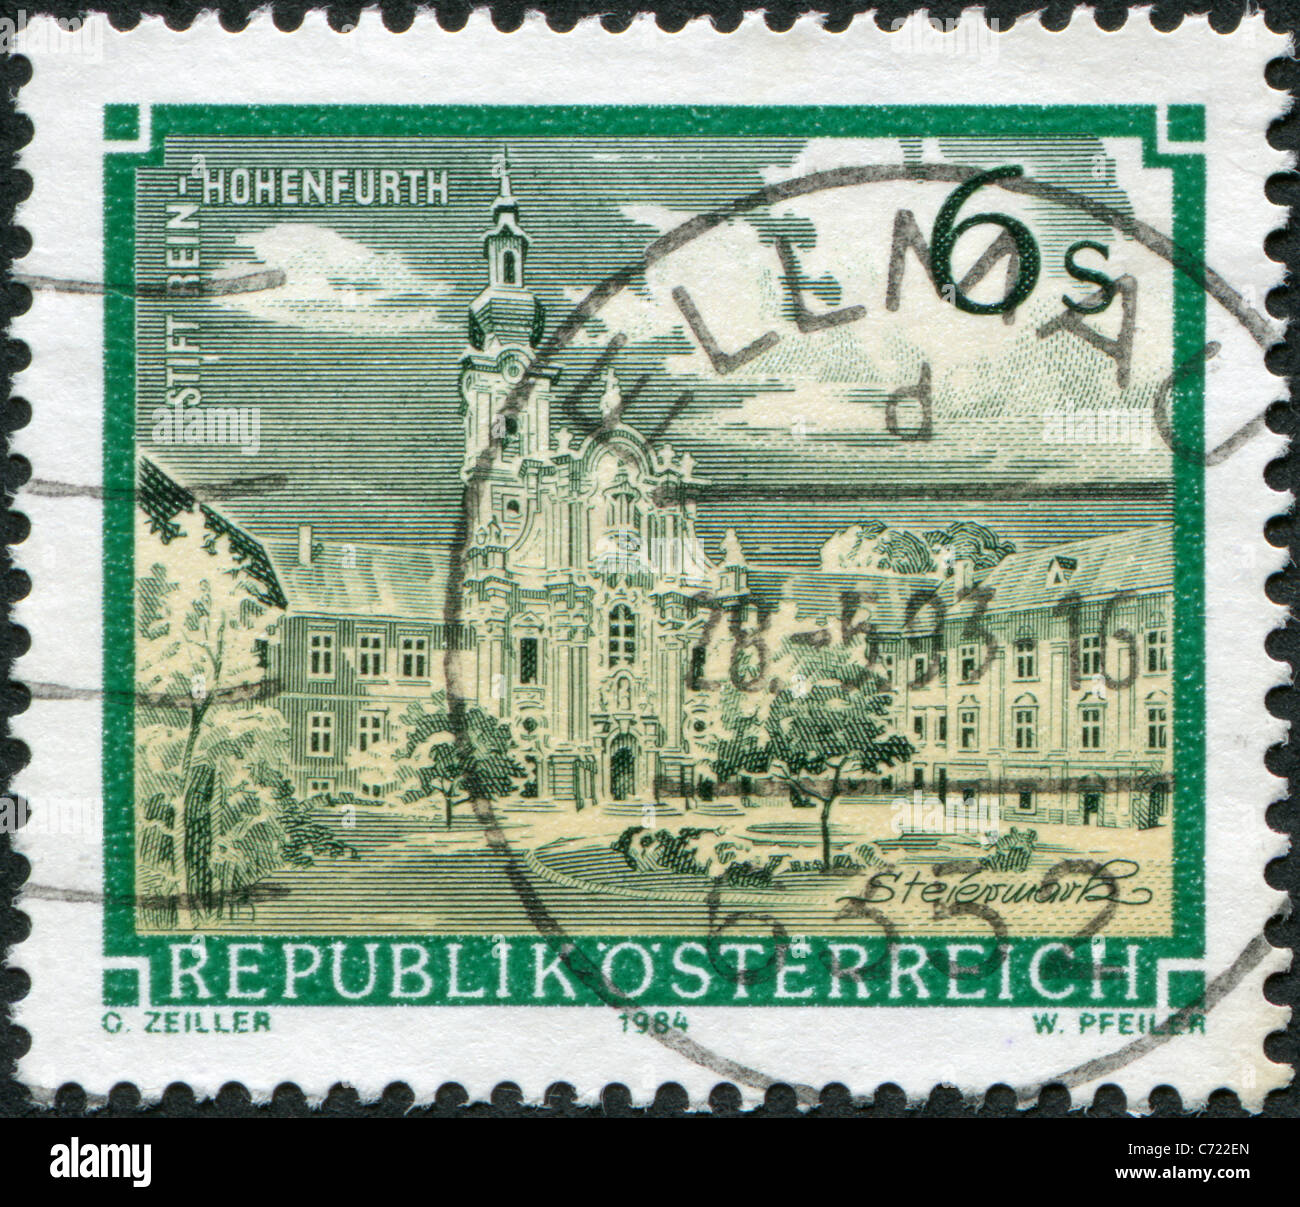 AUSTRIA - 1984: A stamp printed in Austria, is shown Rein Abbey (Rein-Hohenfurth) - Stock Image